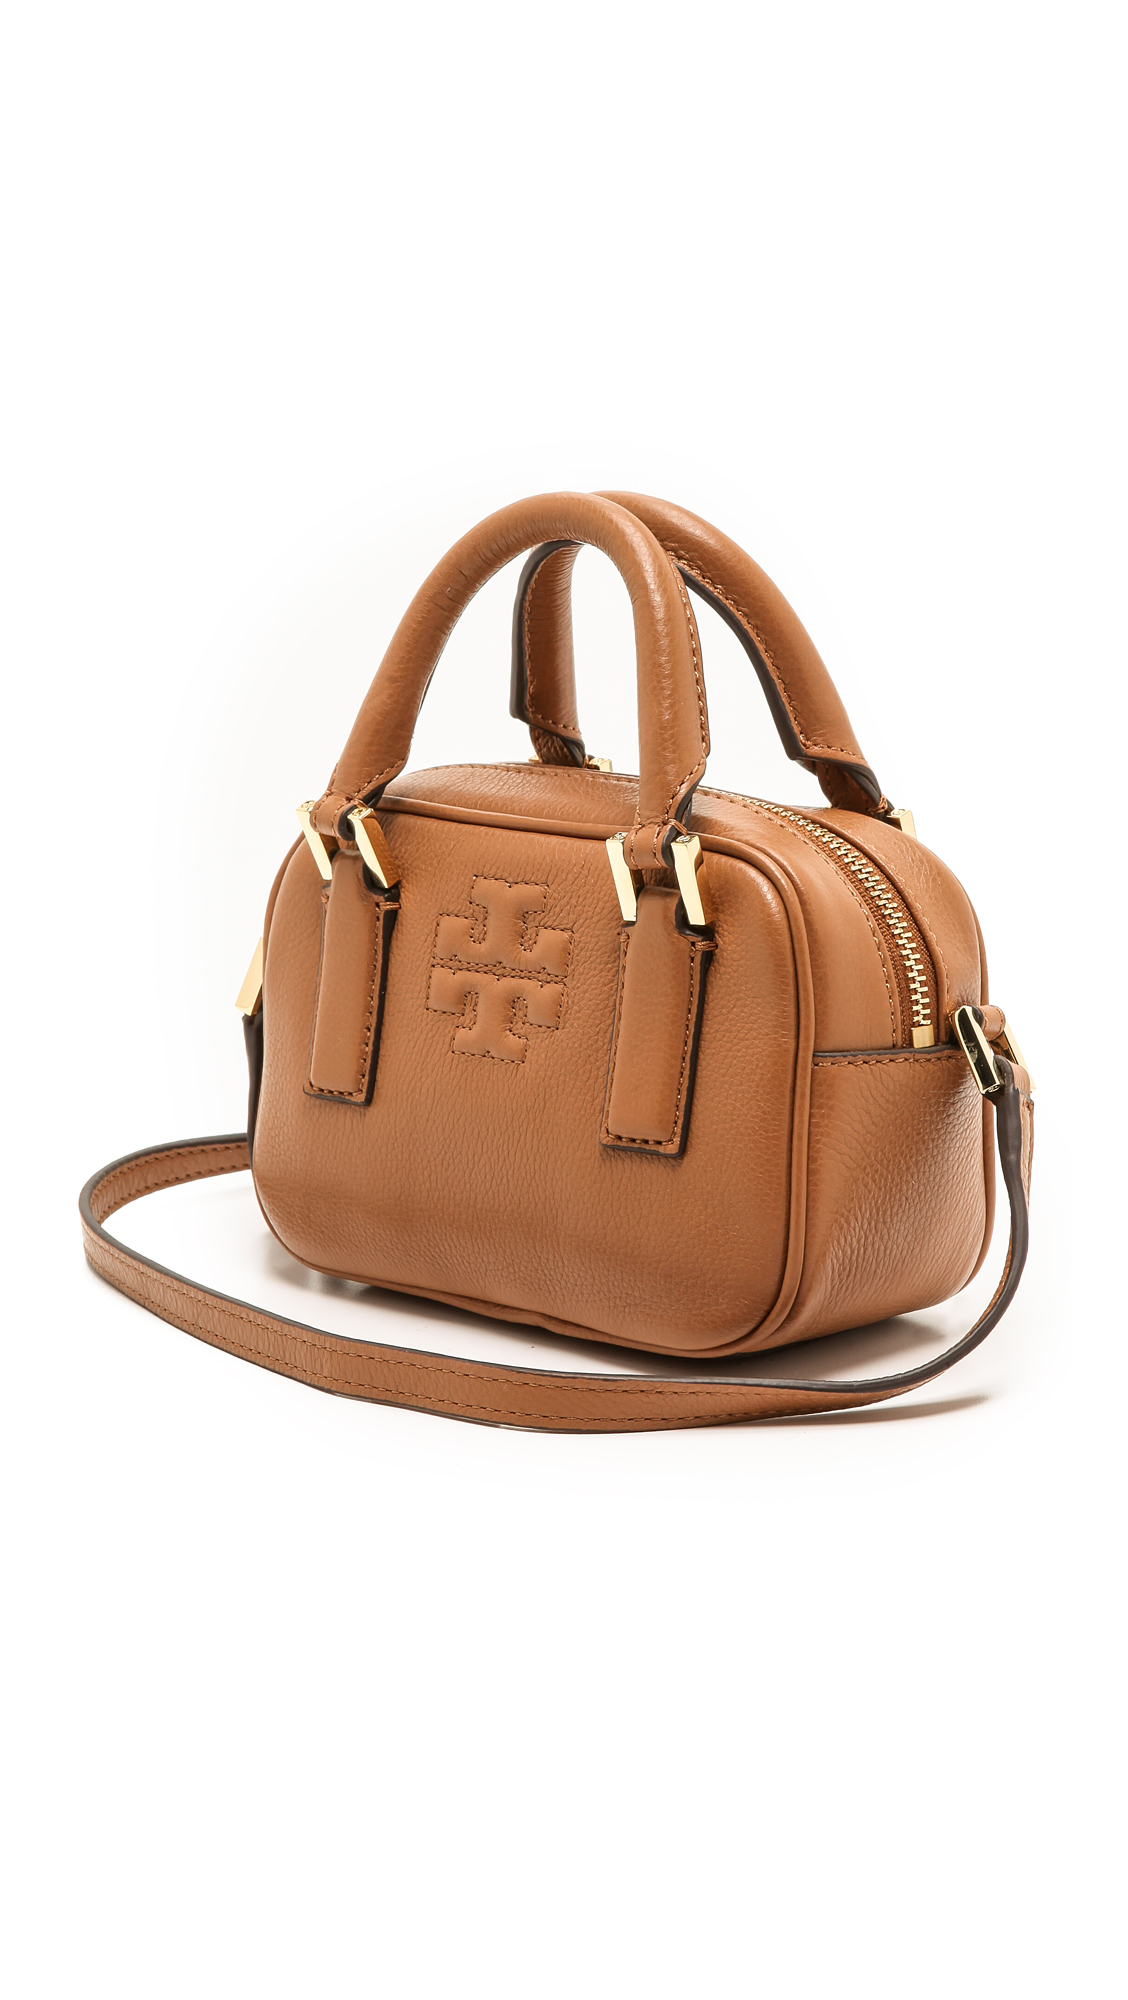 447aab6ad82 Lyst - Tory Burch Thea Mini Satchel in Brown